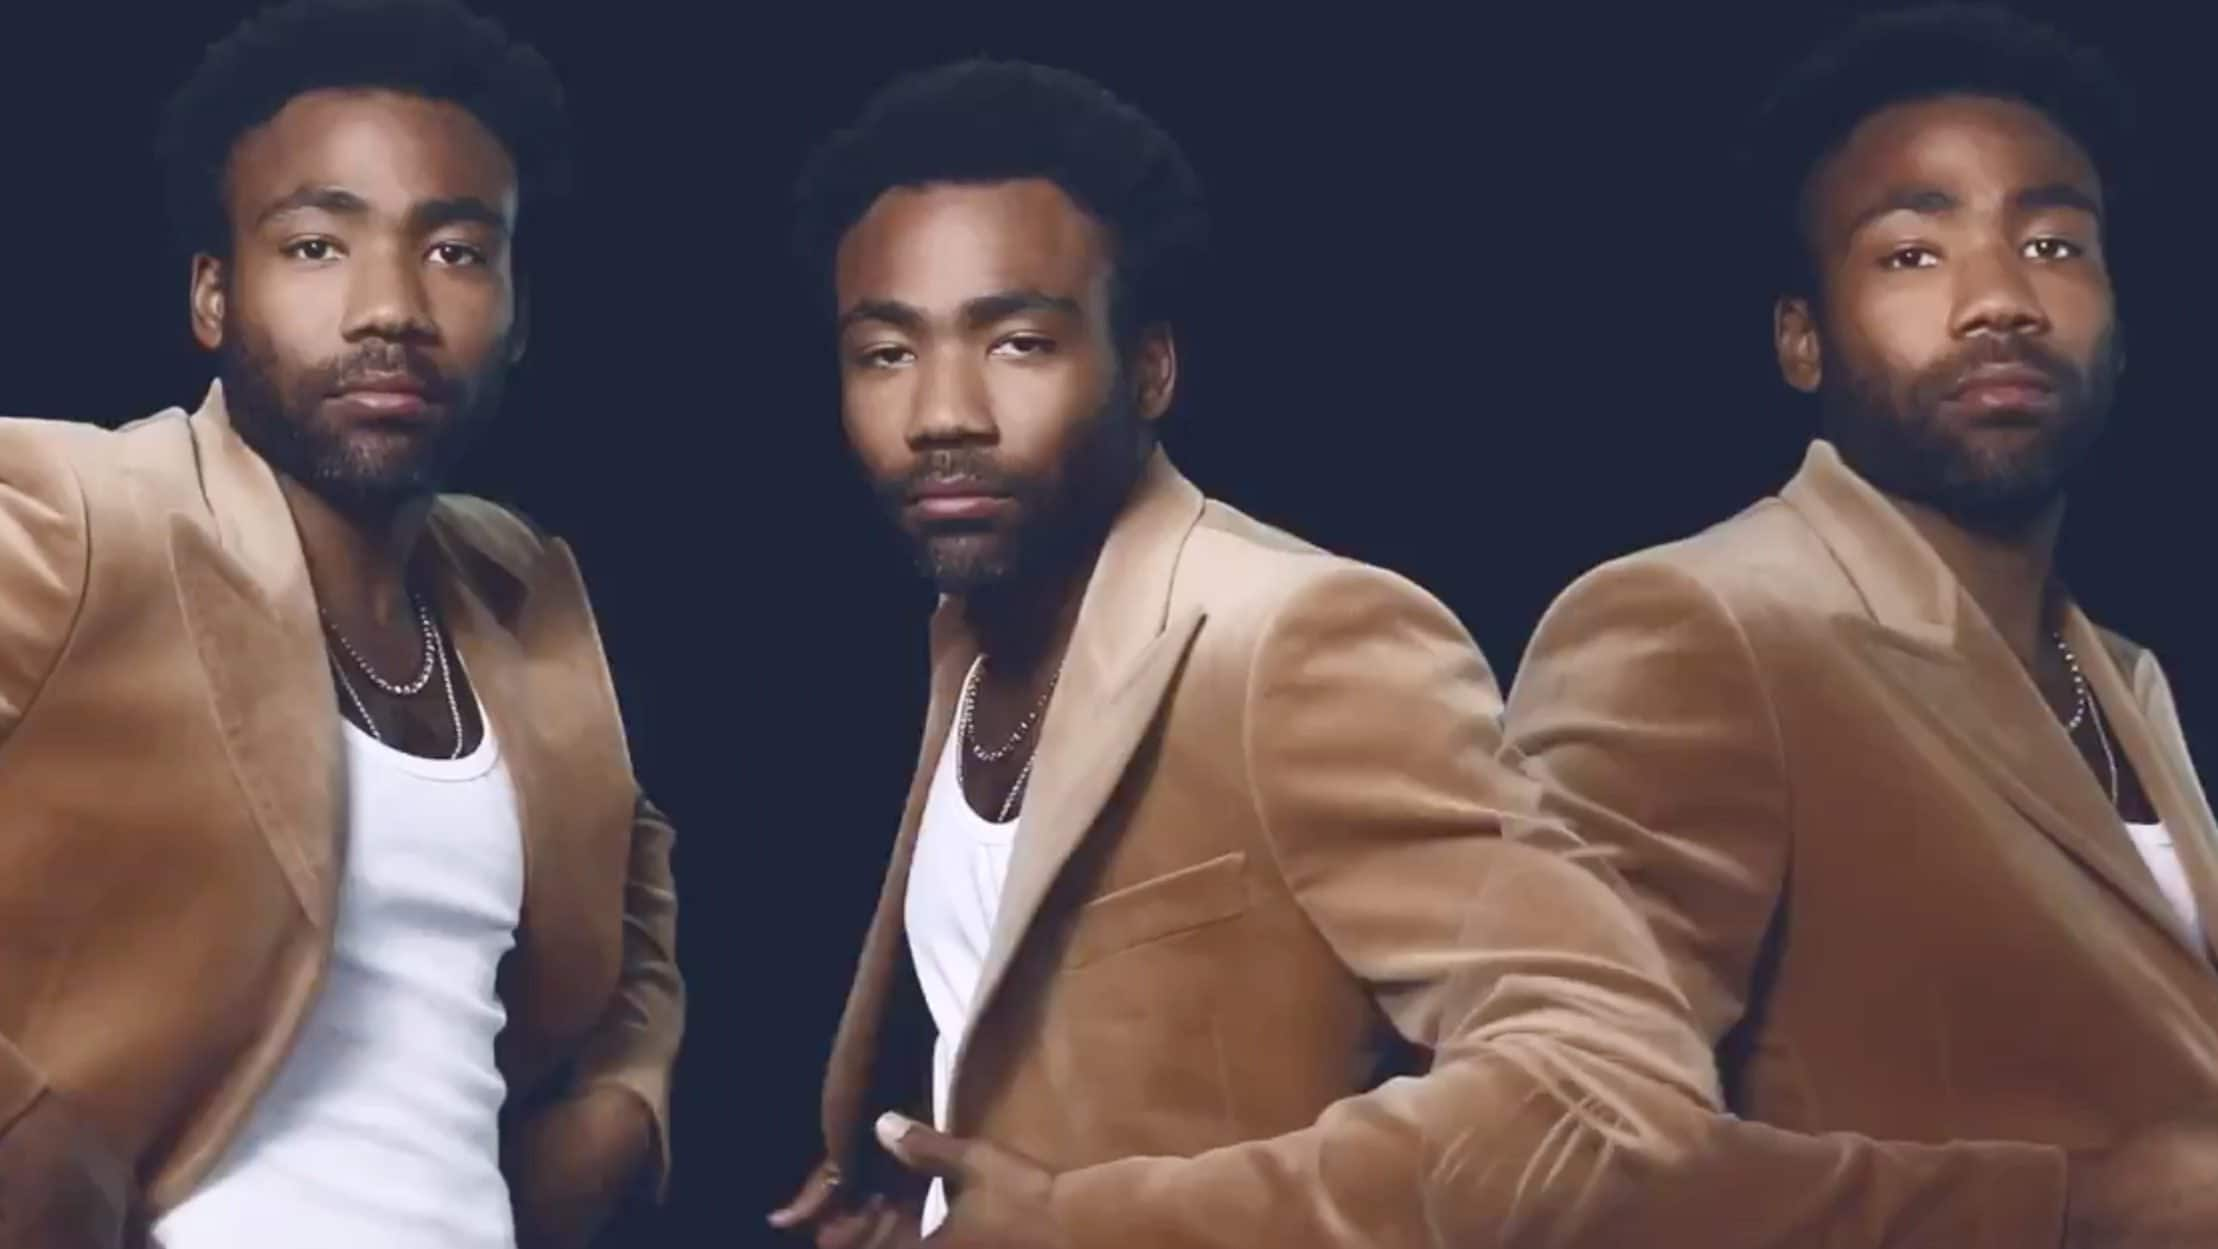 Donald Glover delivers great art in 'This is America' video